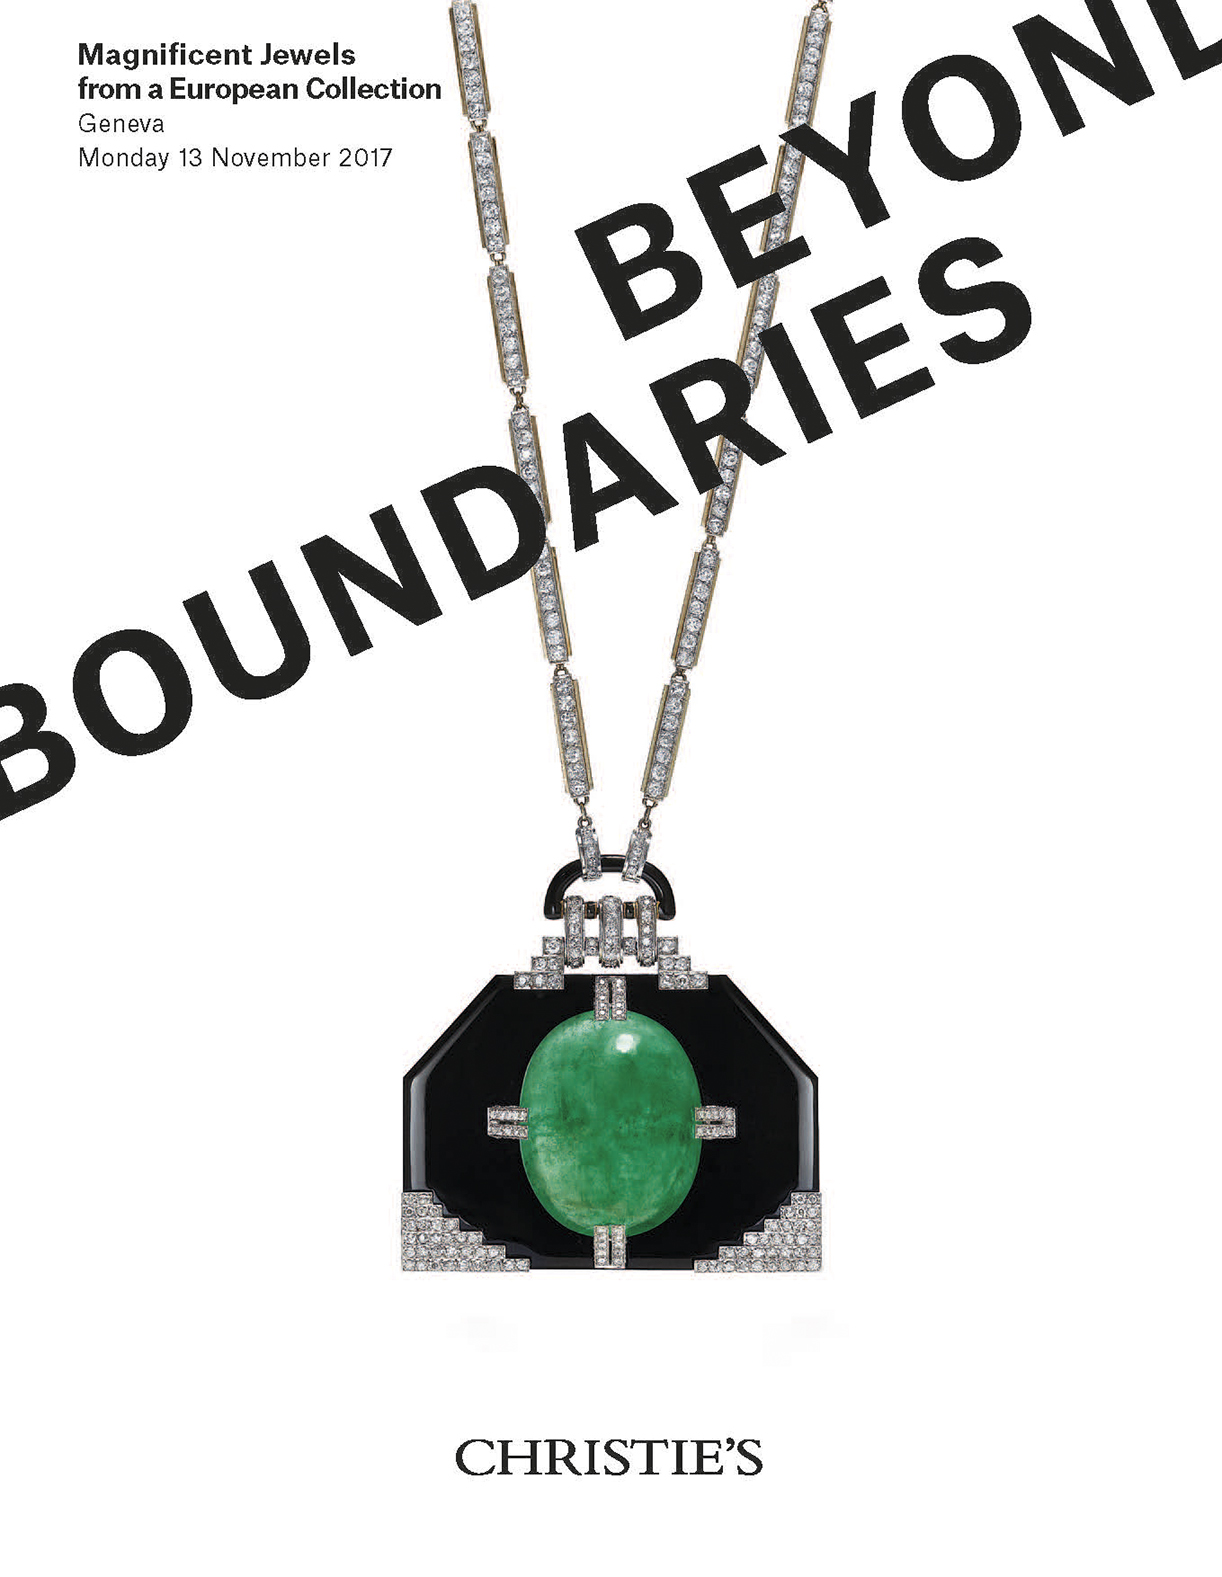 Beyond Boundaries Magnificent Jewels from a European Collection